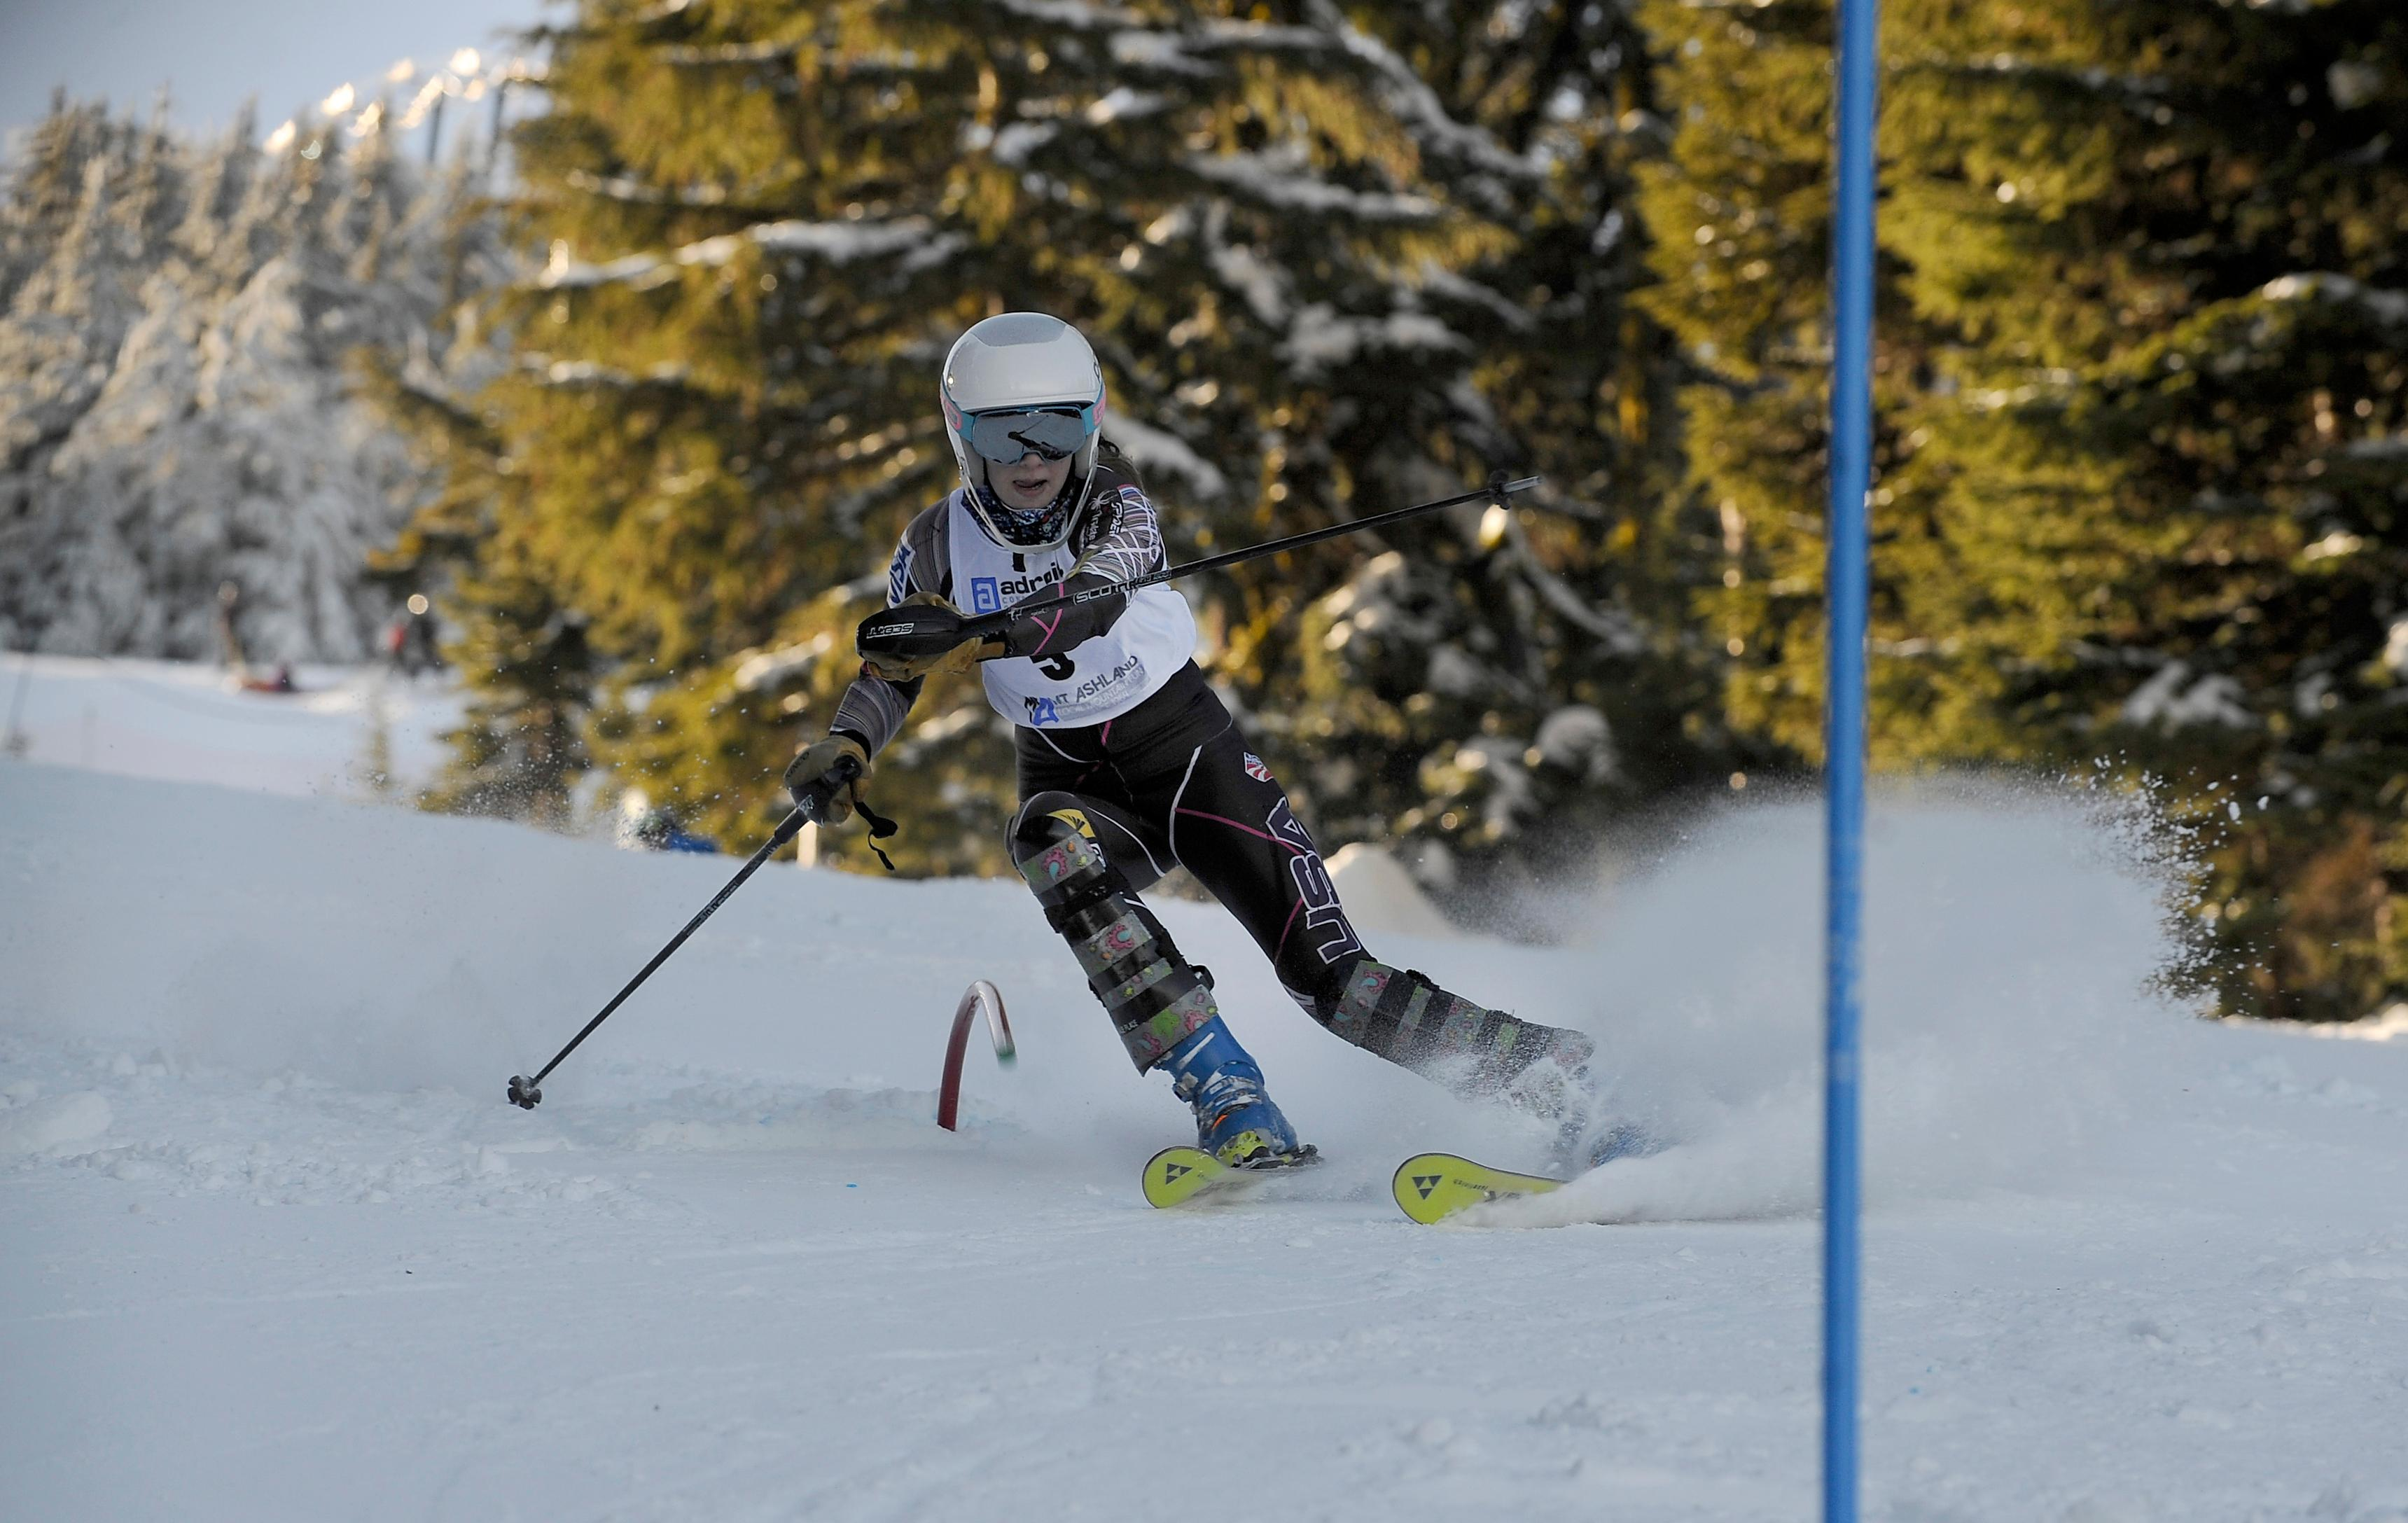 Andy Atkinson / Mail TribuneCrater's Gracen Hokanson clears a gate in her 2nd run winning the Southern Oregon Alpine League slalom event Saturday at Mt Ashland.